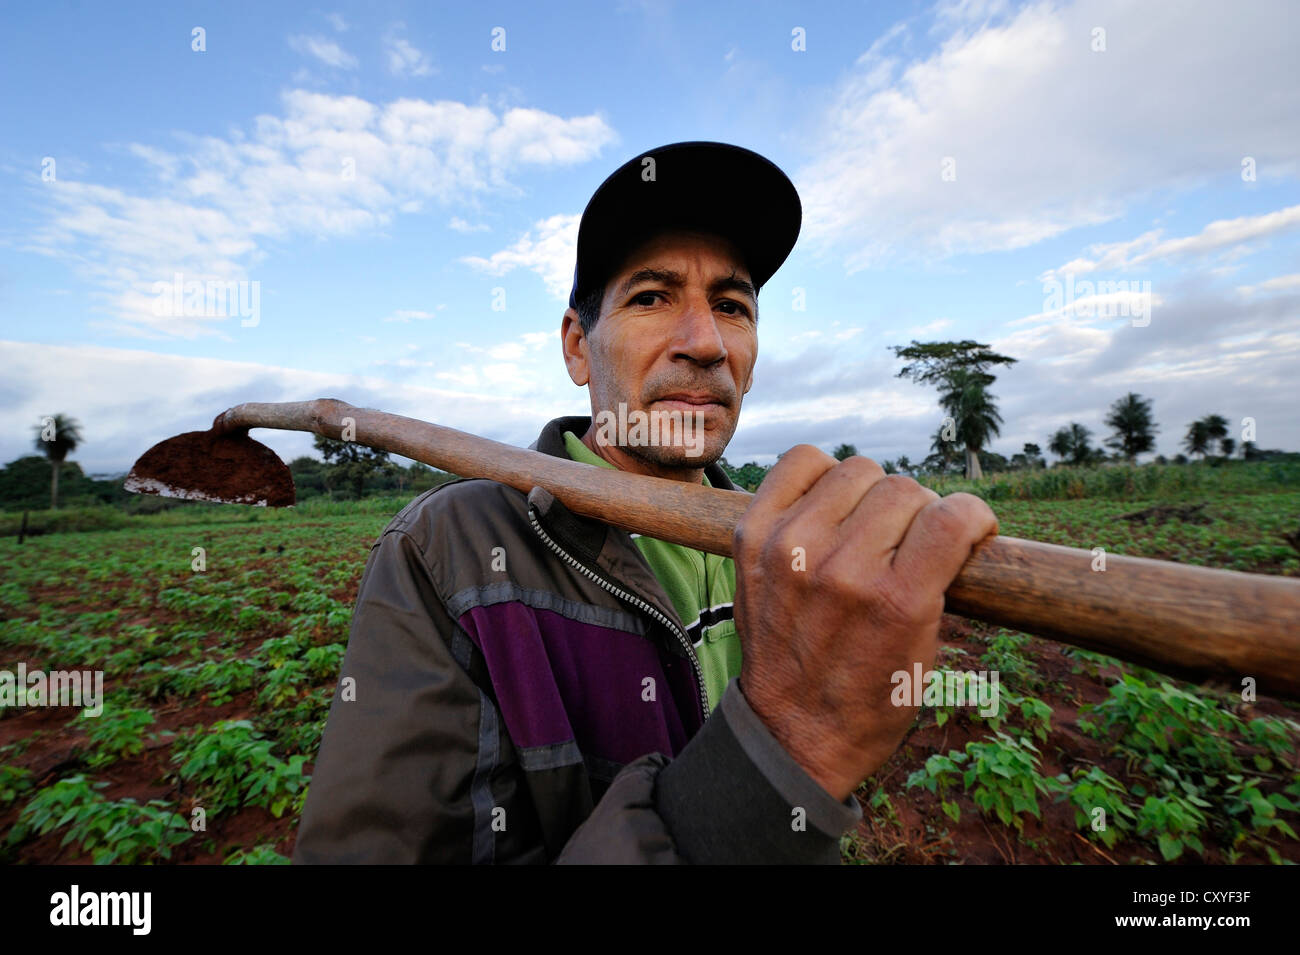 Smallholder carrying a hoe on his field of beans, Comunidad Arroyito, Departamento Concepcion, Paraguay, South America - Stock Image